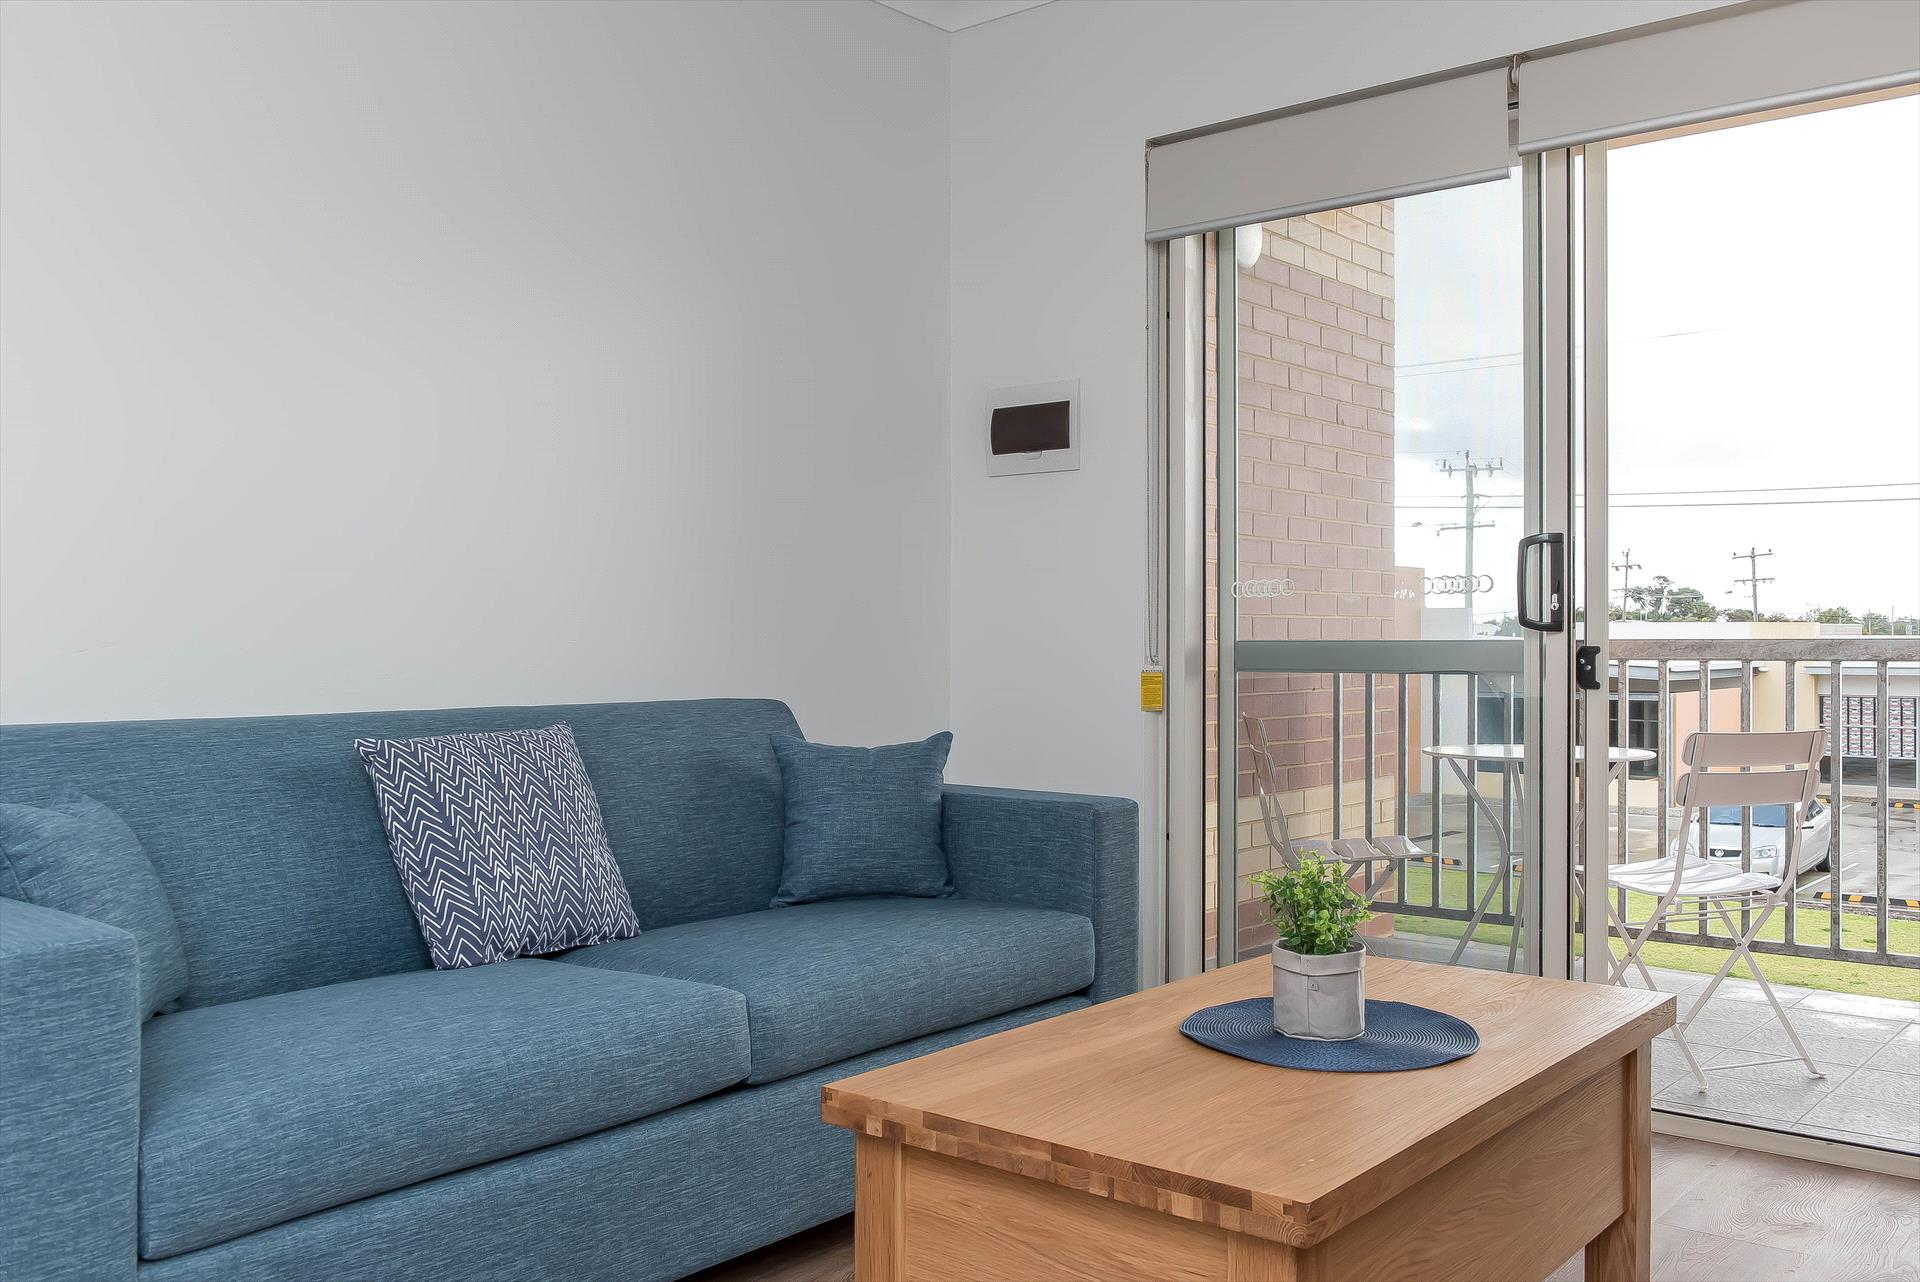 Jurien Bay Motel Apartments